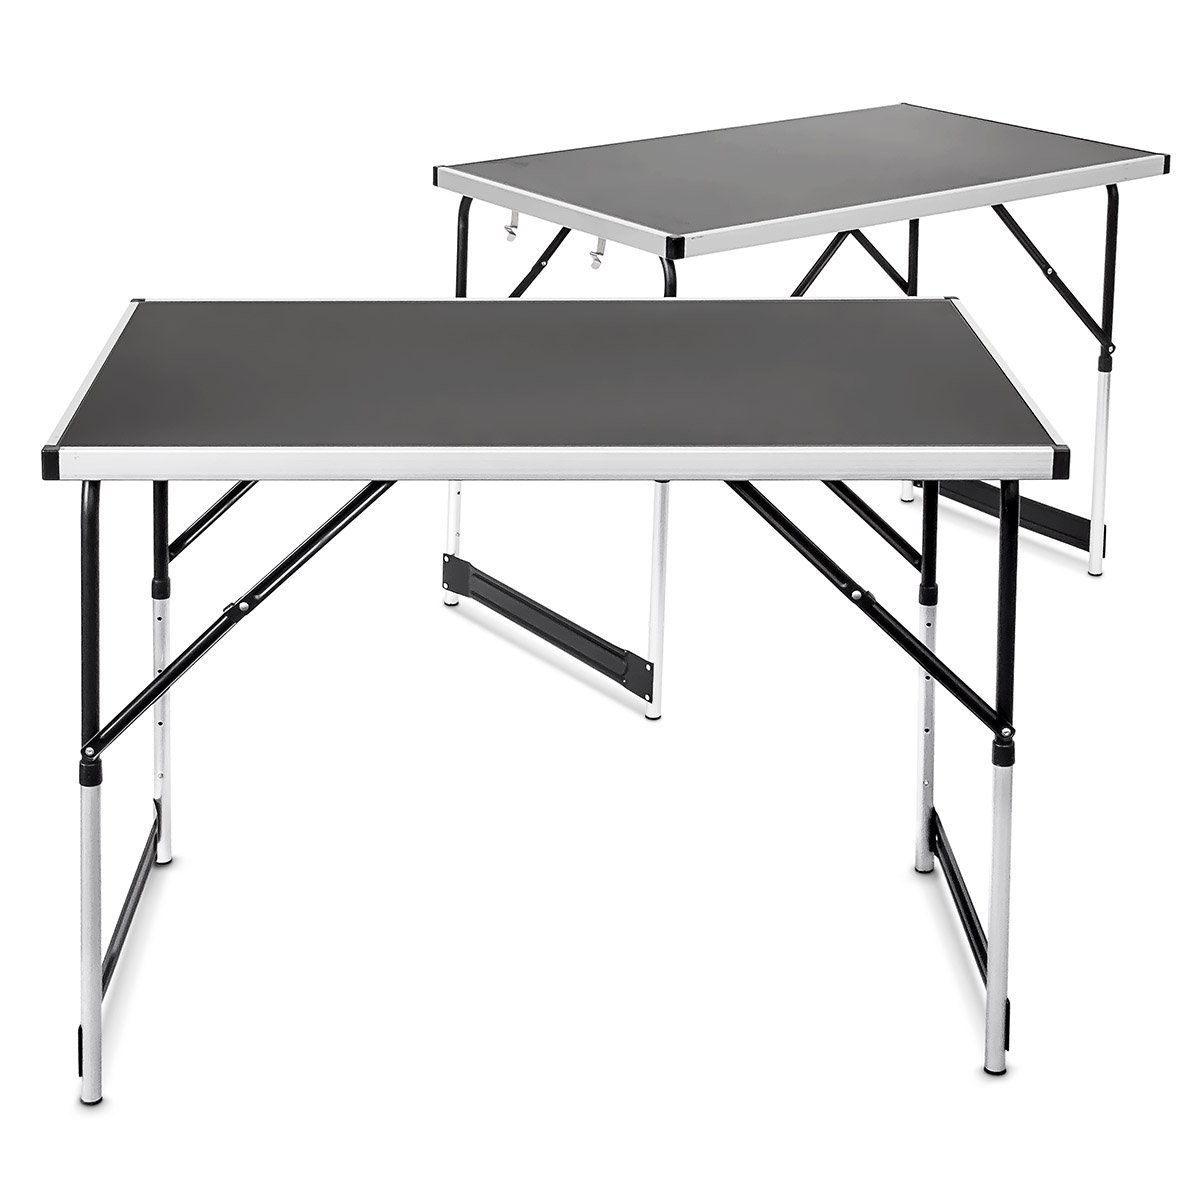 Relaxdays Multi-Purpose Aluminium Folding Tables Set Of 2 Adjustable In Height Pasting Tables